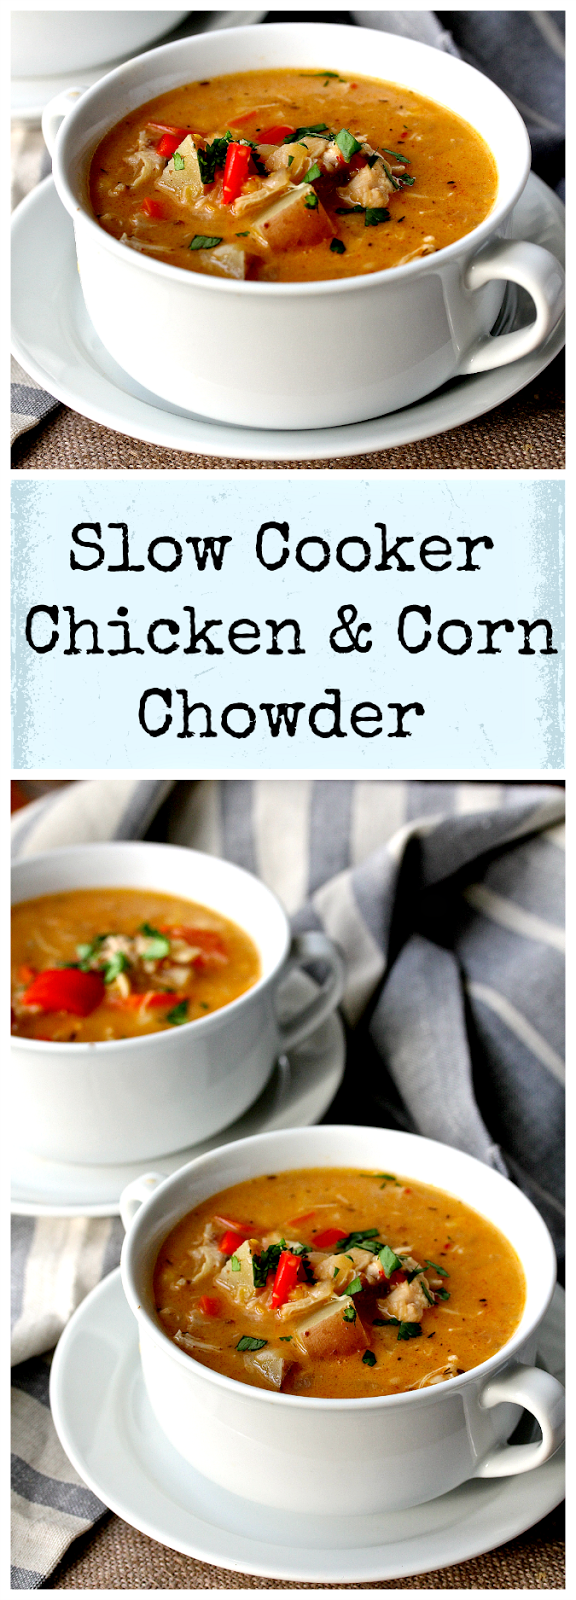 This Slow Cooker Chicken and Corn Chowder is so warming, filling, rich tasting, and perfect for a winter lunch or dinner.